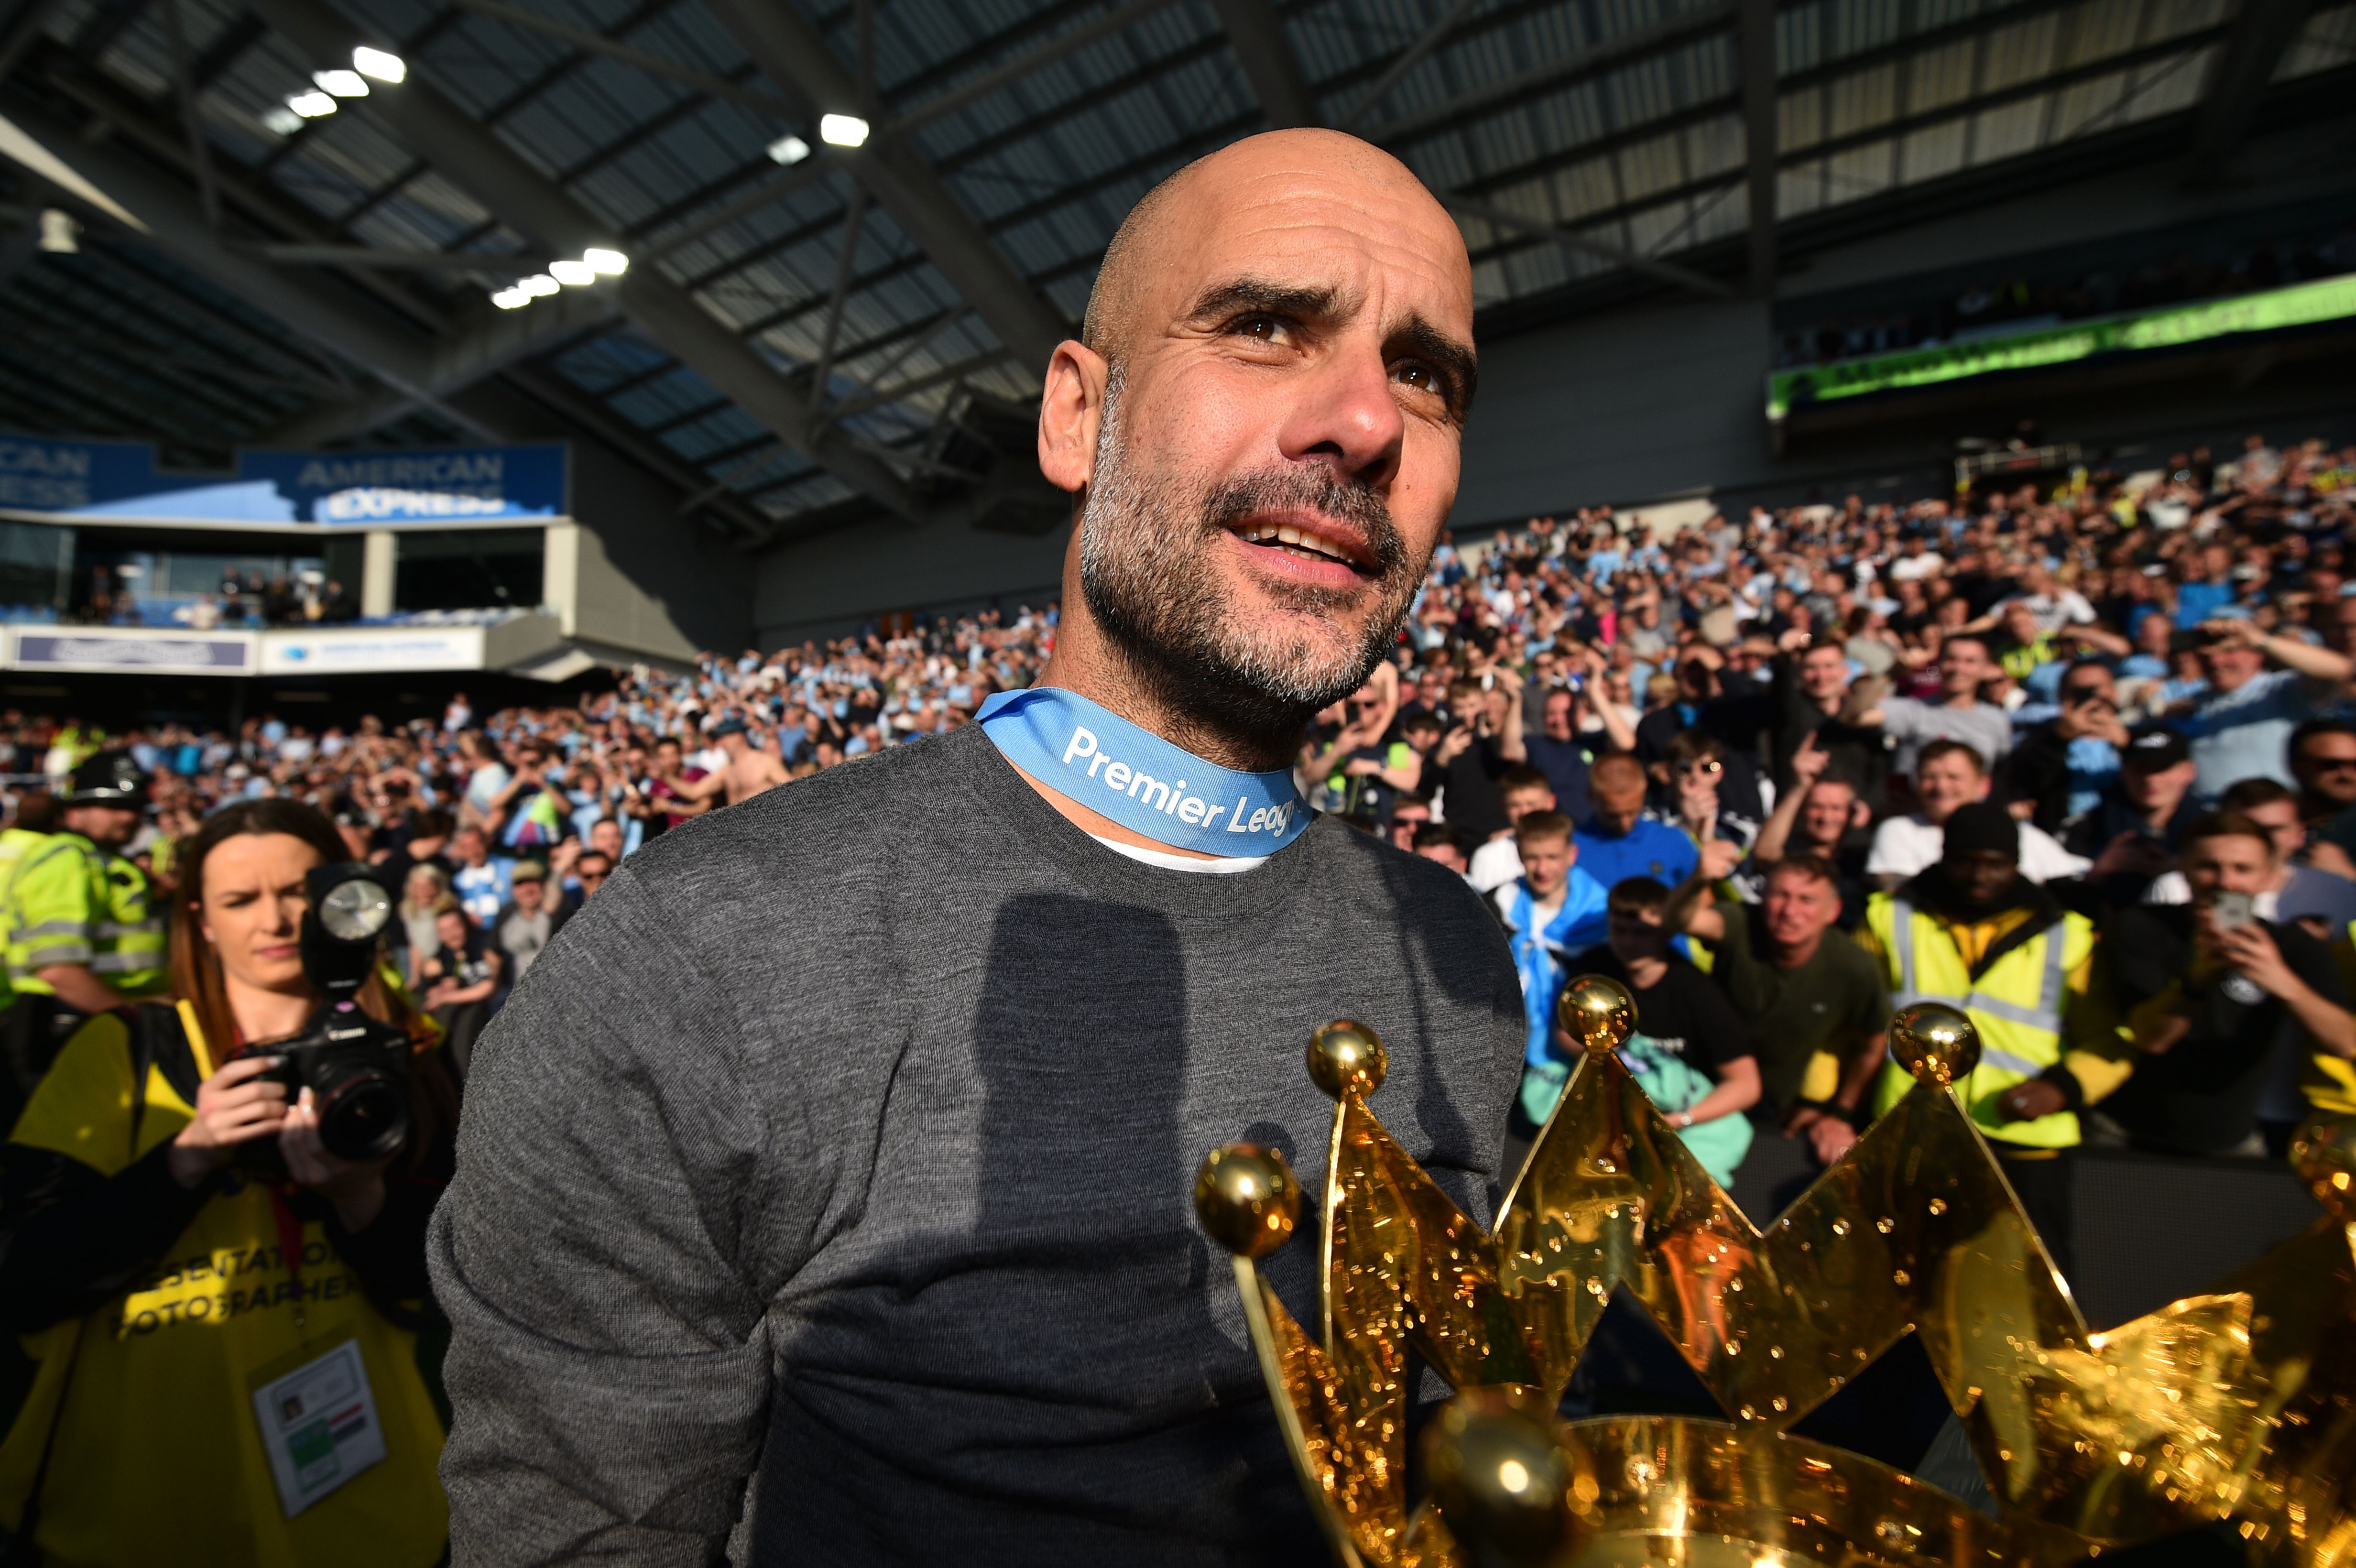 Pep Guardiola will reportedly be named new Juventus manager on June 4